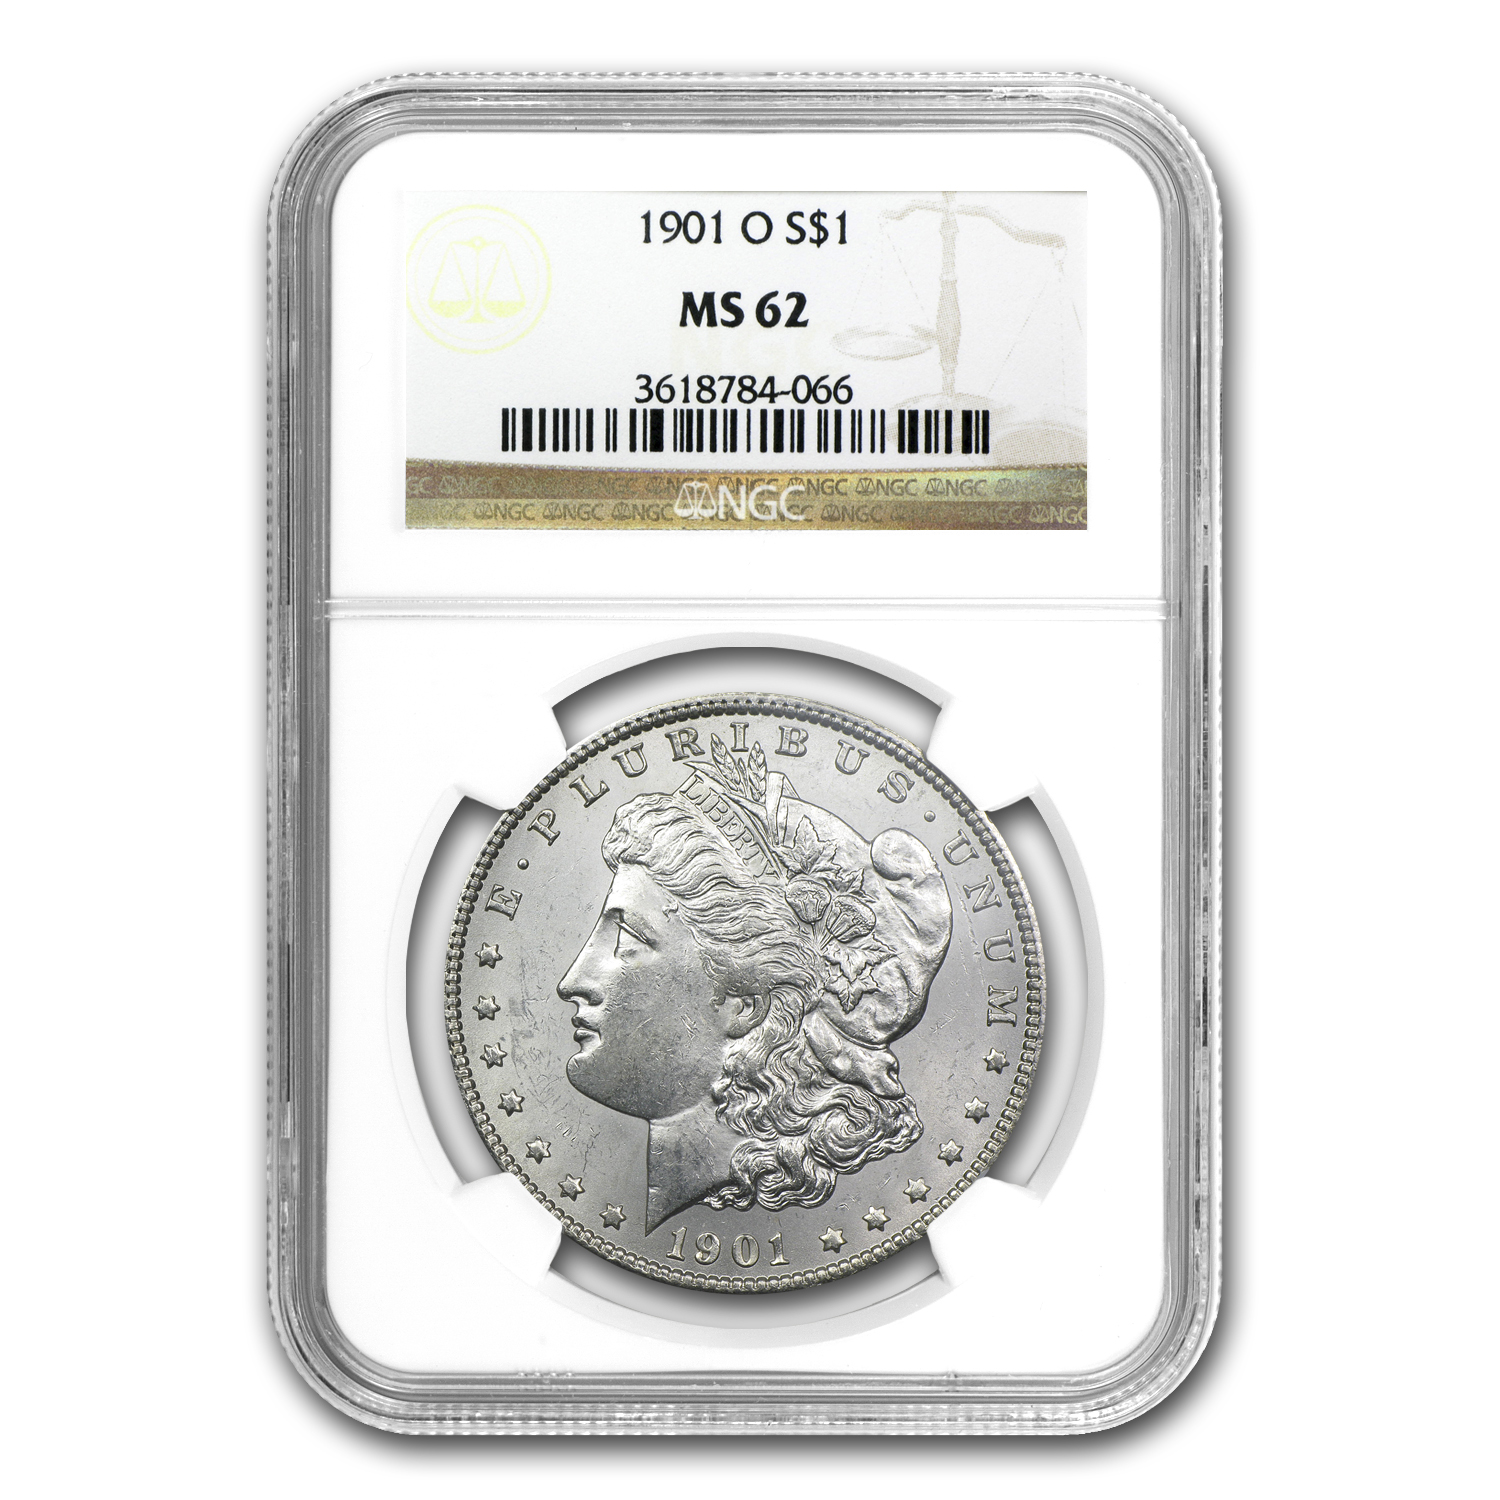 1878-1904 20-Different Morgan Dollars MS-62 NGC